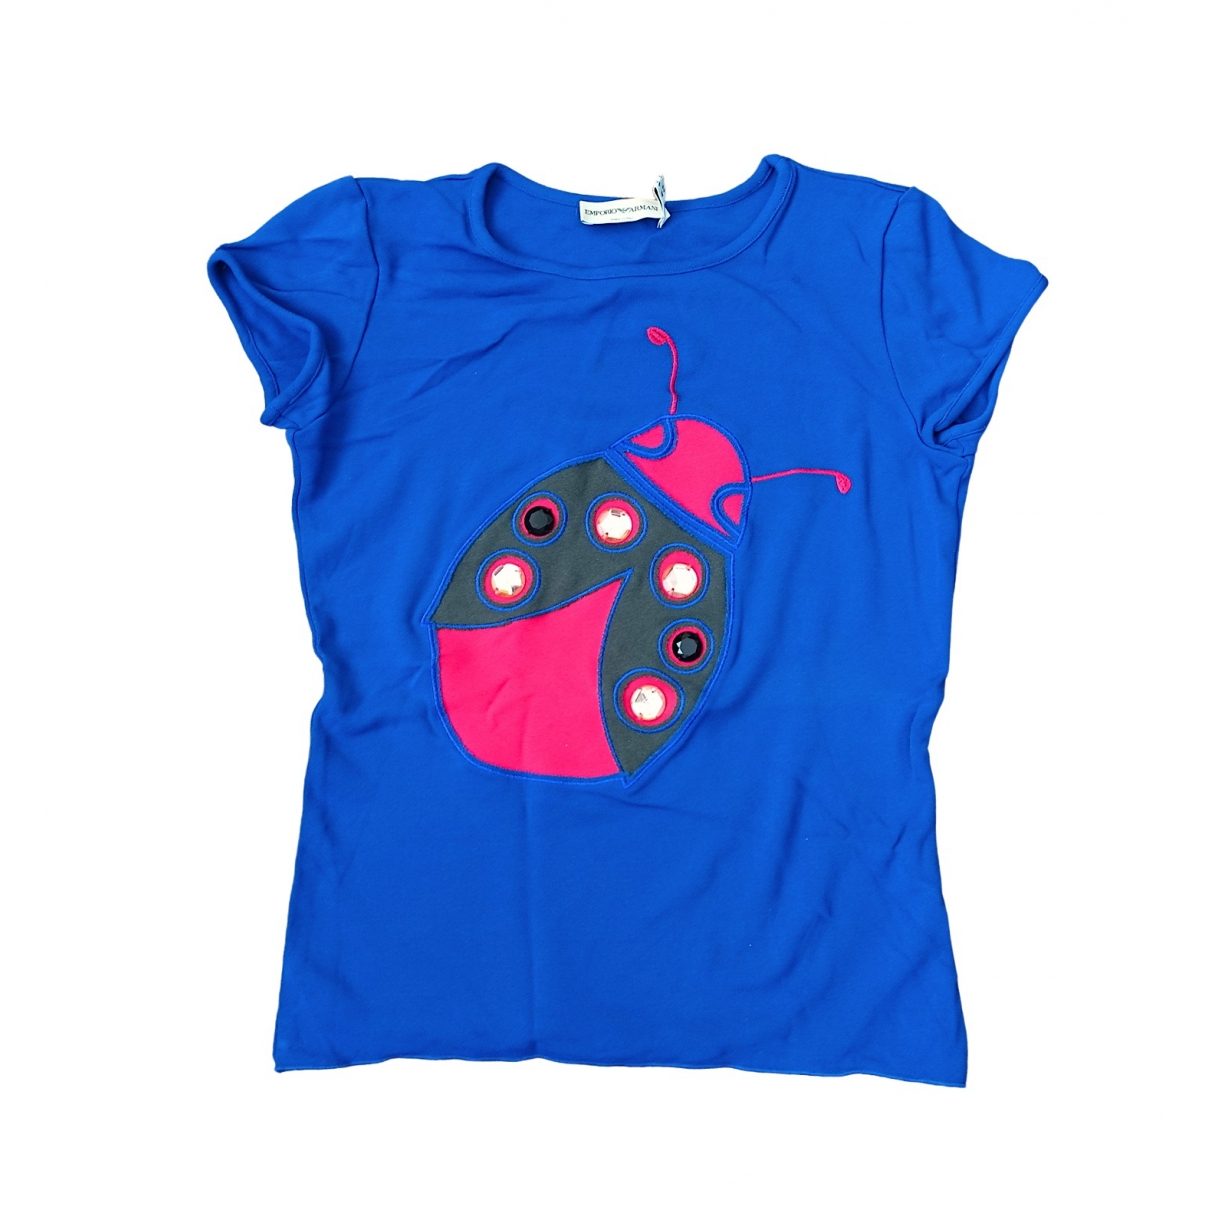 Emporio Armani \N Blue  top for Women 40 IT